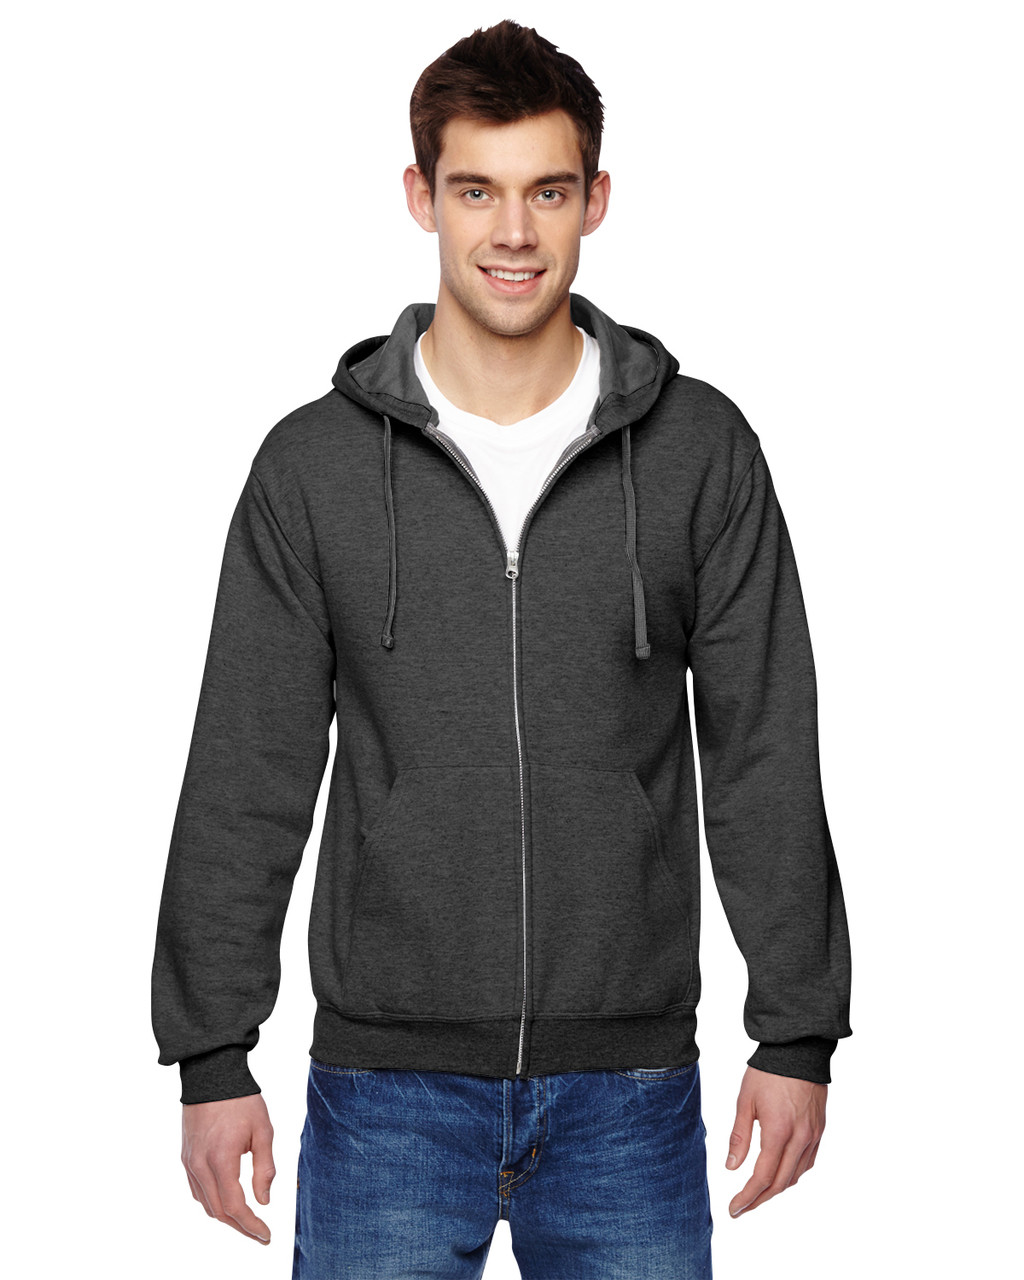 Charcoal Heather - SF73R Fruit Of The Loom Softspun Full-Zip Hooded Sweatshirt | Blankclothing.ca